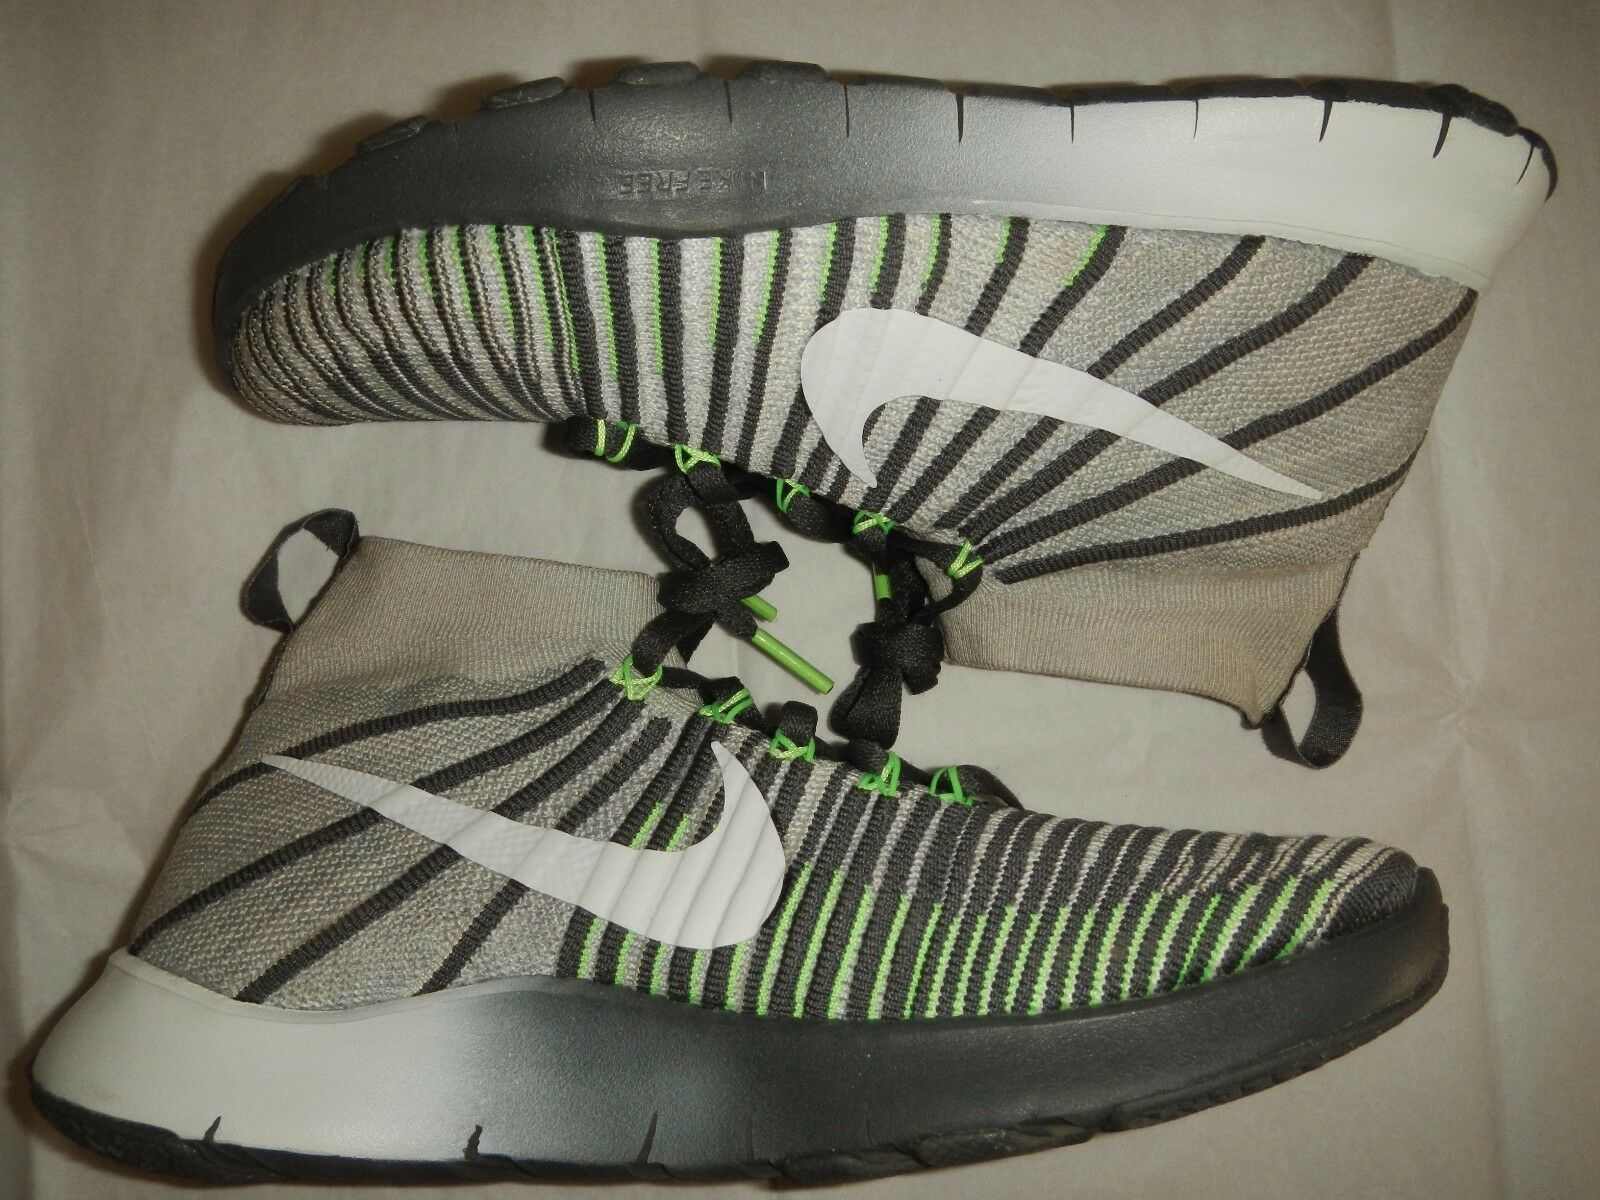 NIKE FREE TRAIN FORCE FLYKNIT TRAINING, TRAINING, TRAINING, STYLE 833275 110 , Größe 7, NEW 53709d